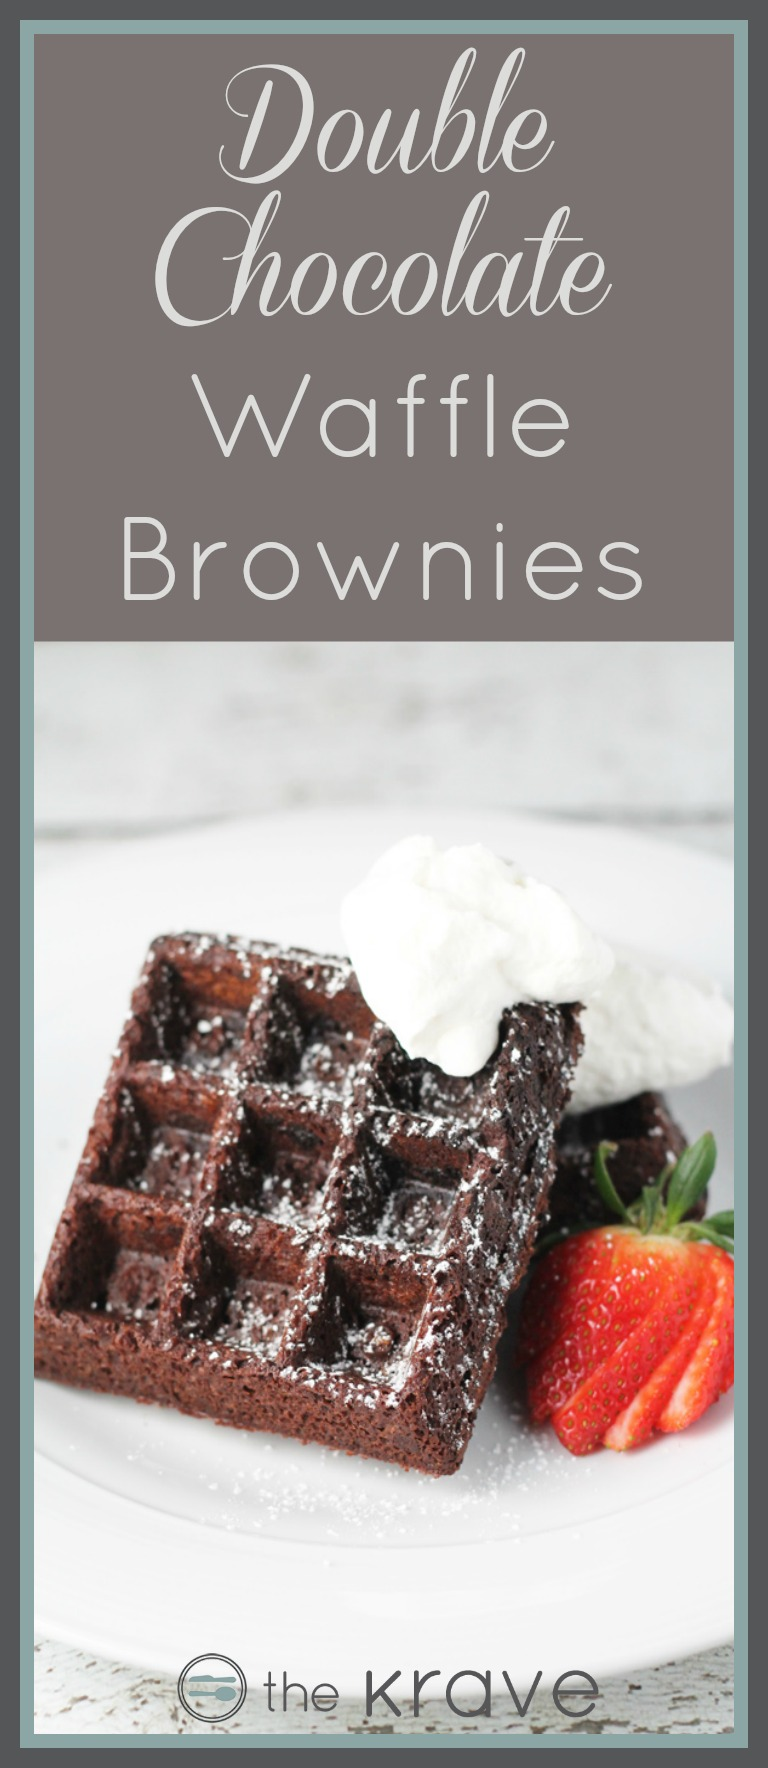 double-chocolate-waffle-brownies-thekrave